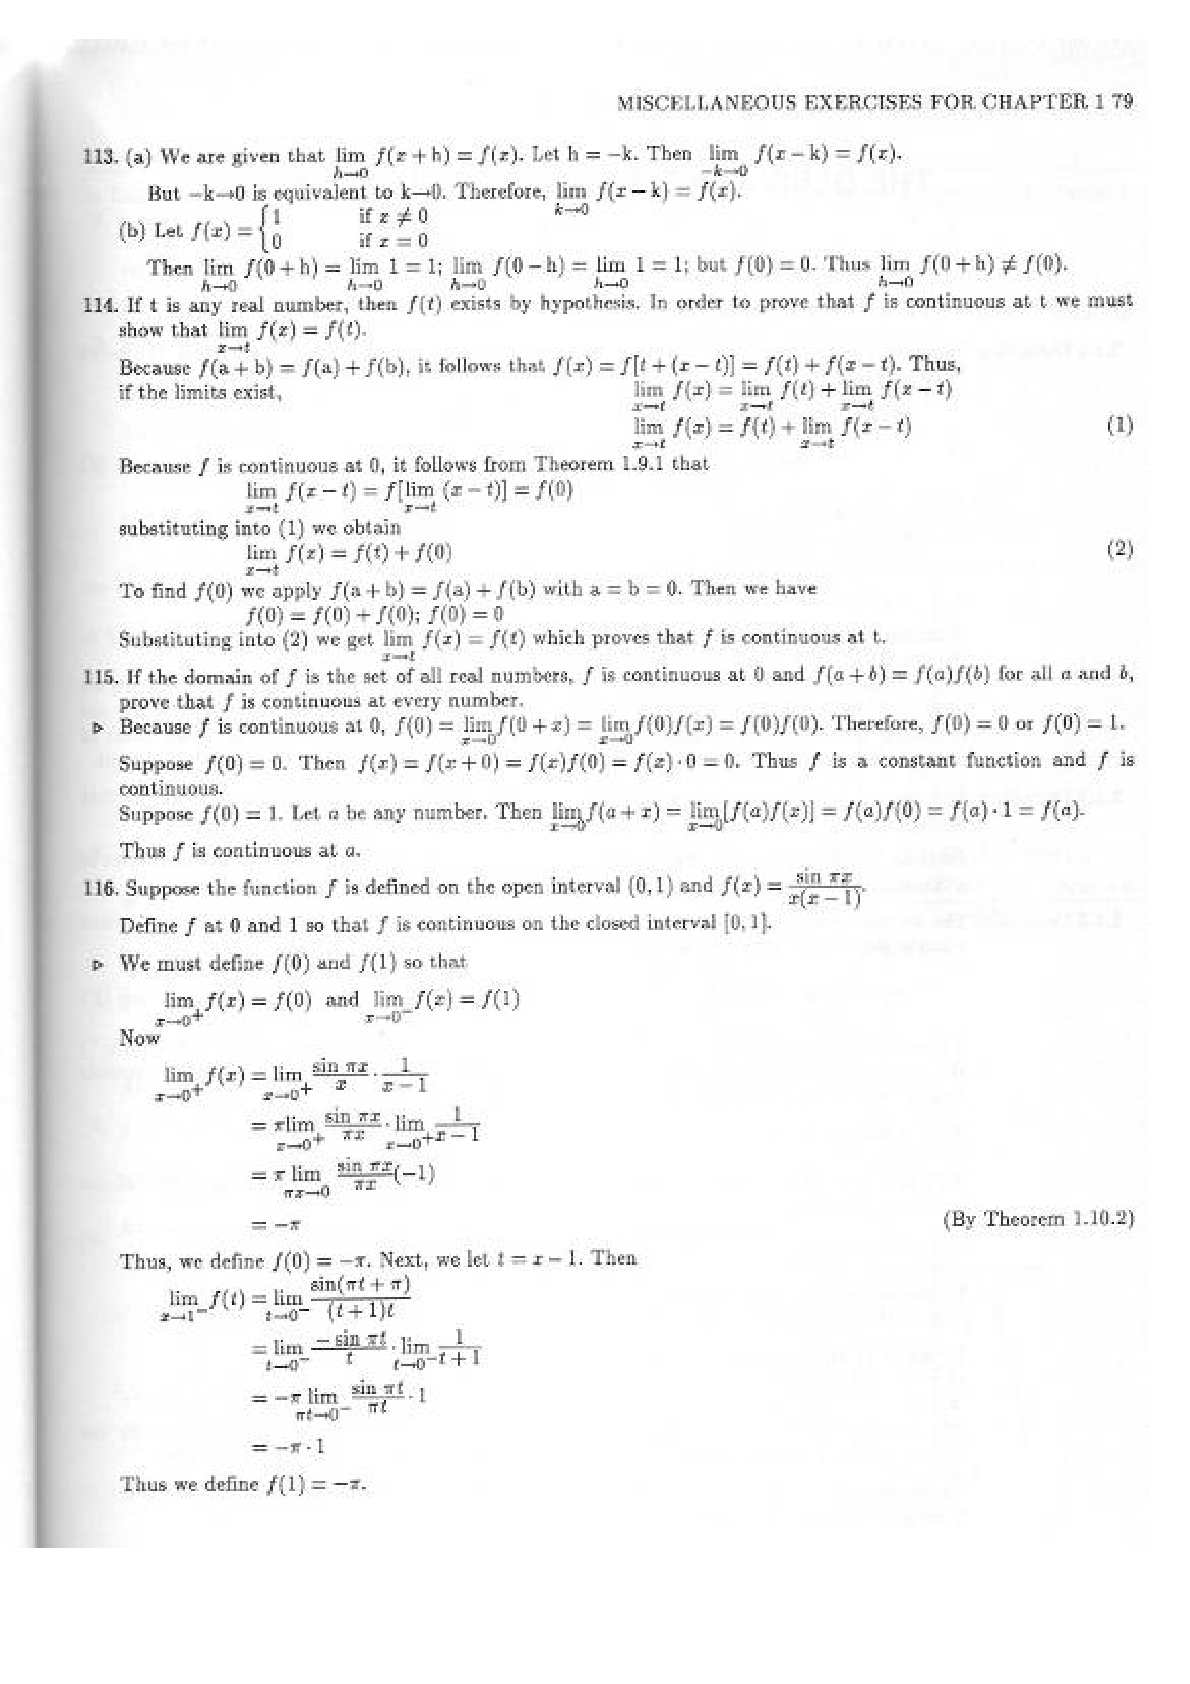 Page 78